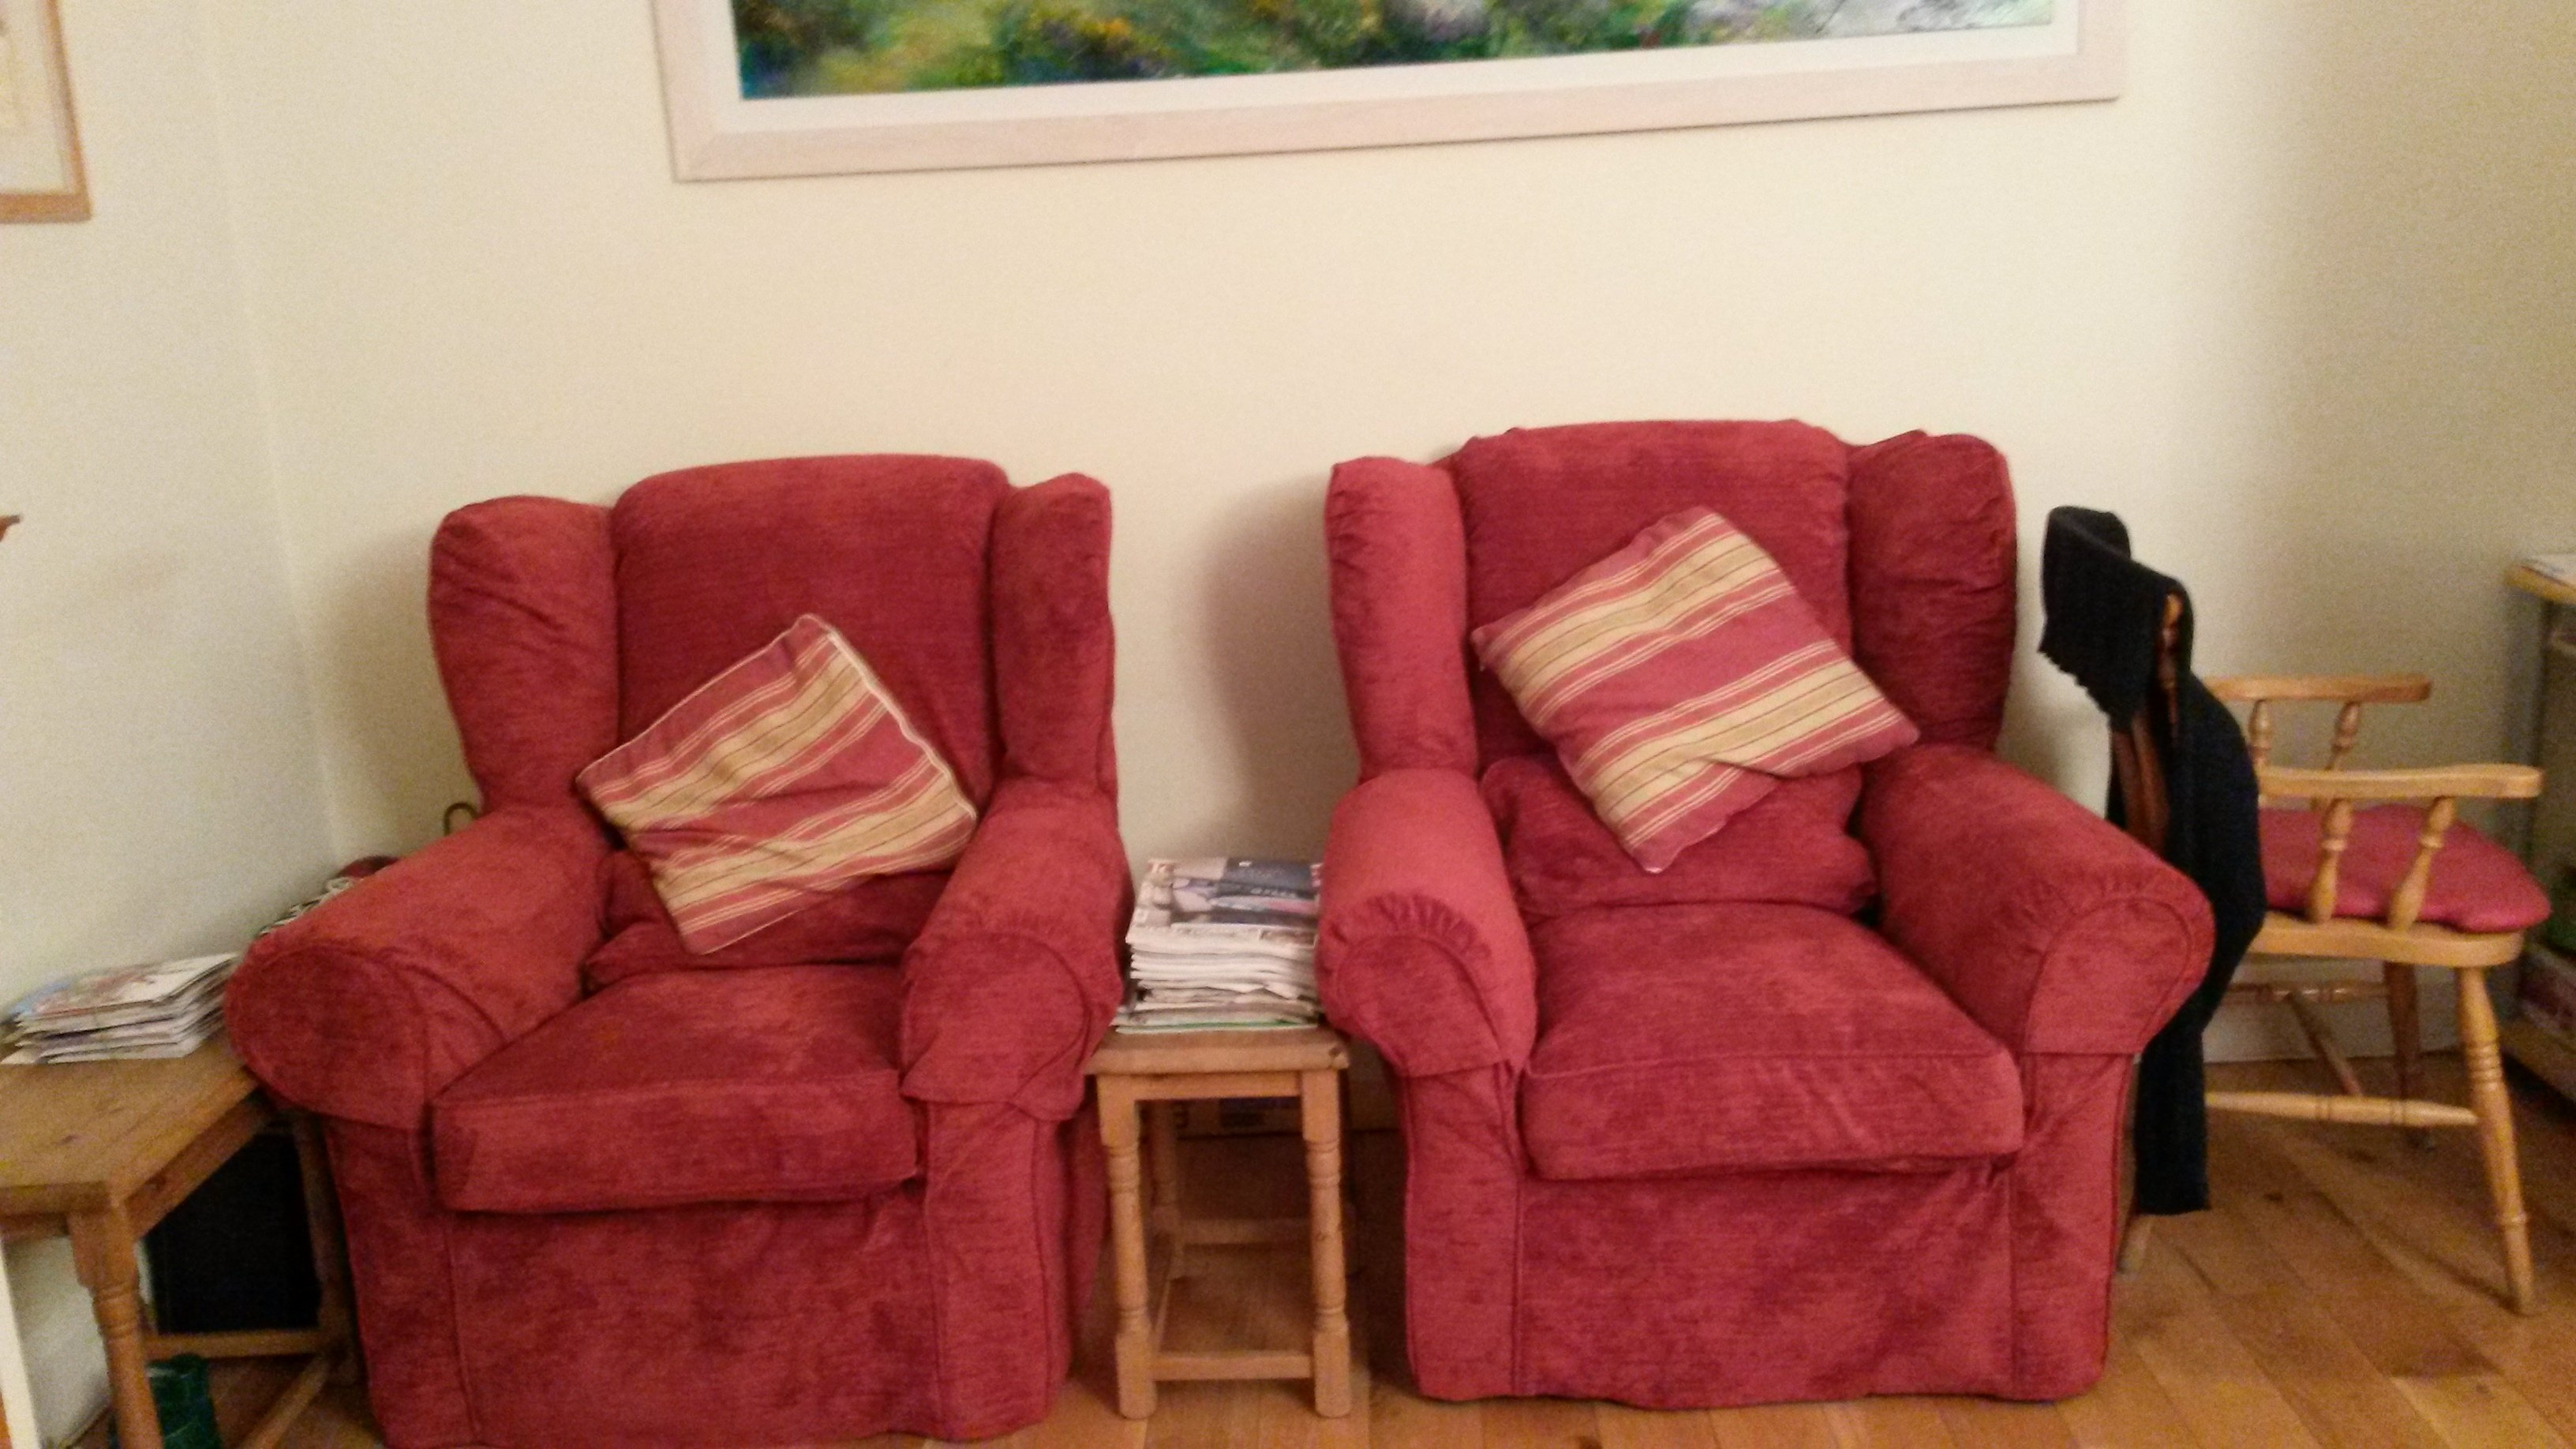 Eeze Covers For New Sofa Covers Pertaining To Marks And Spencer Sofas And Chairs (View 5 of 15)